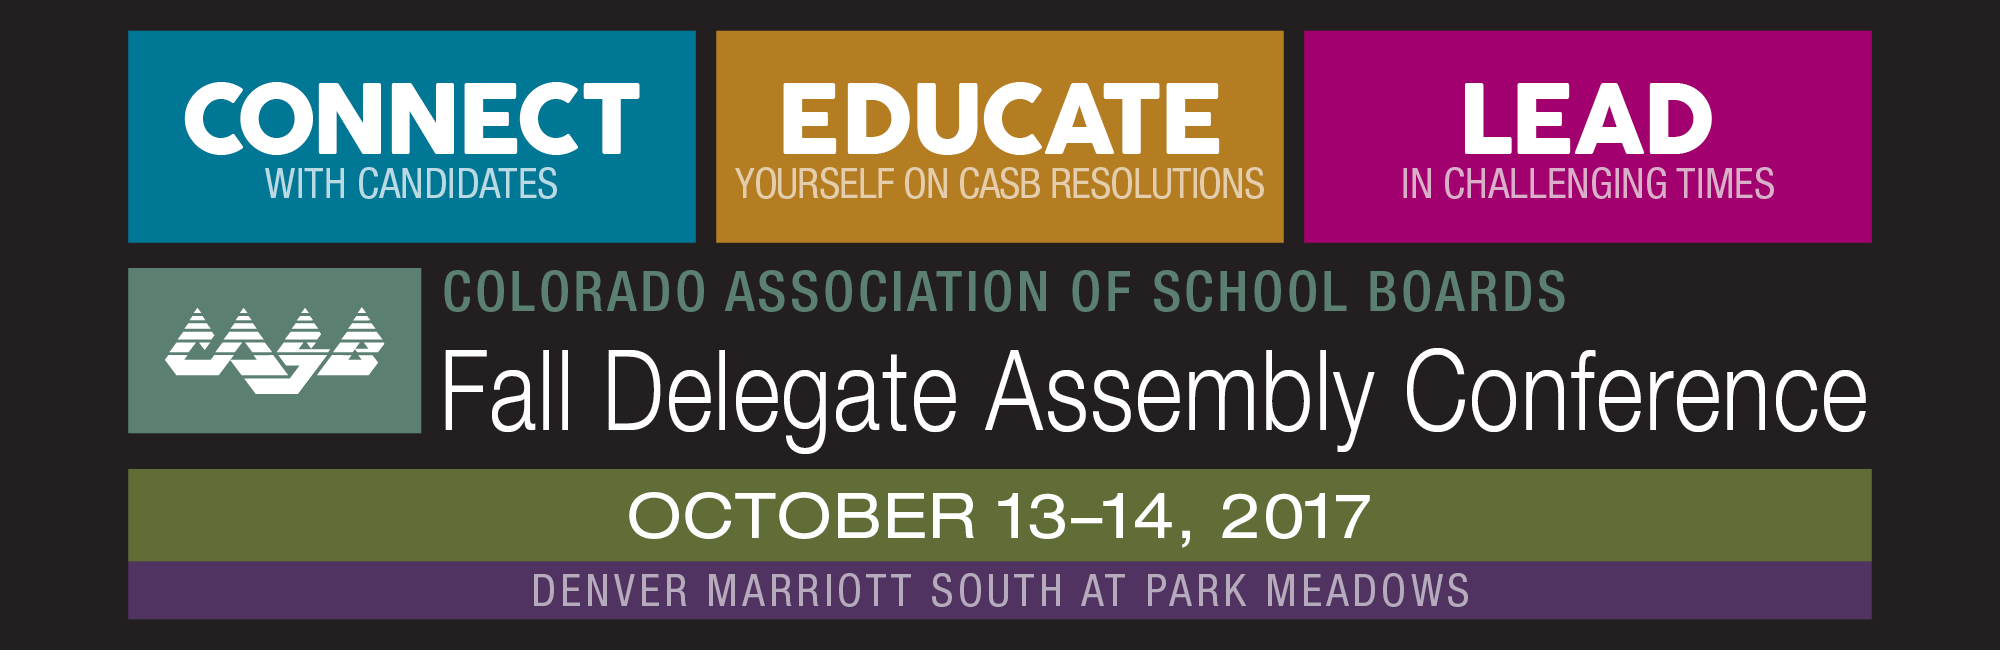 2017 CASB Fall Delegate Assembly Conference